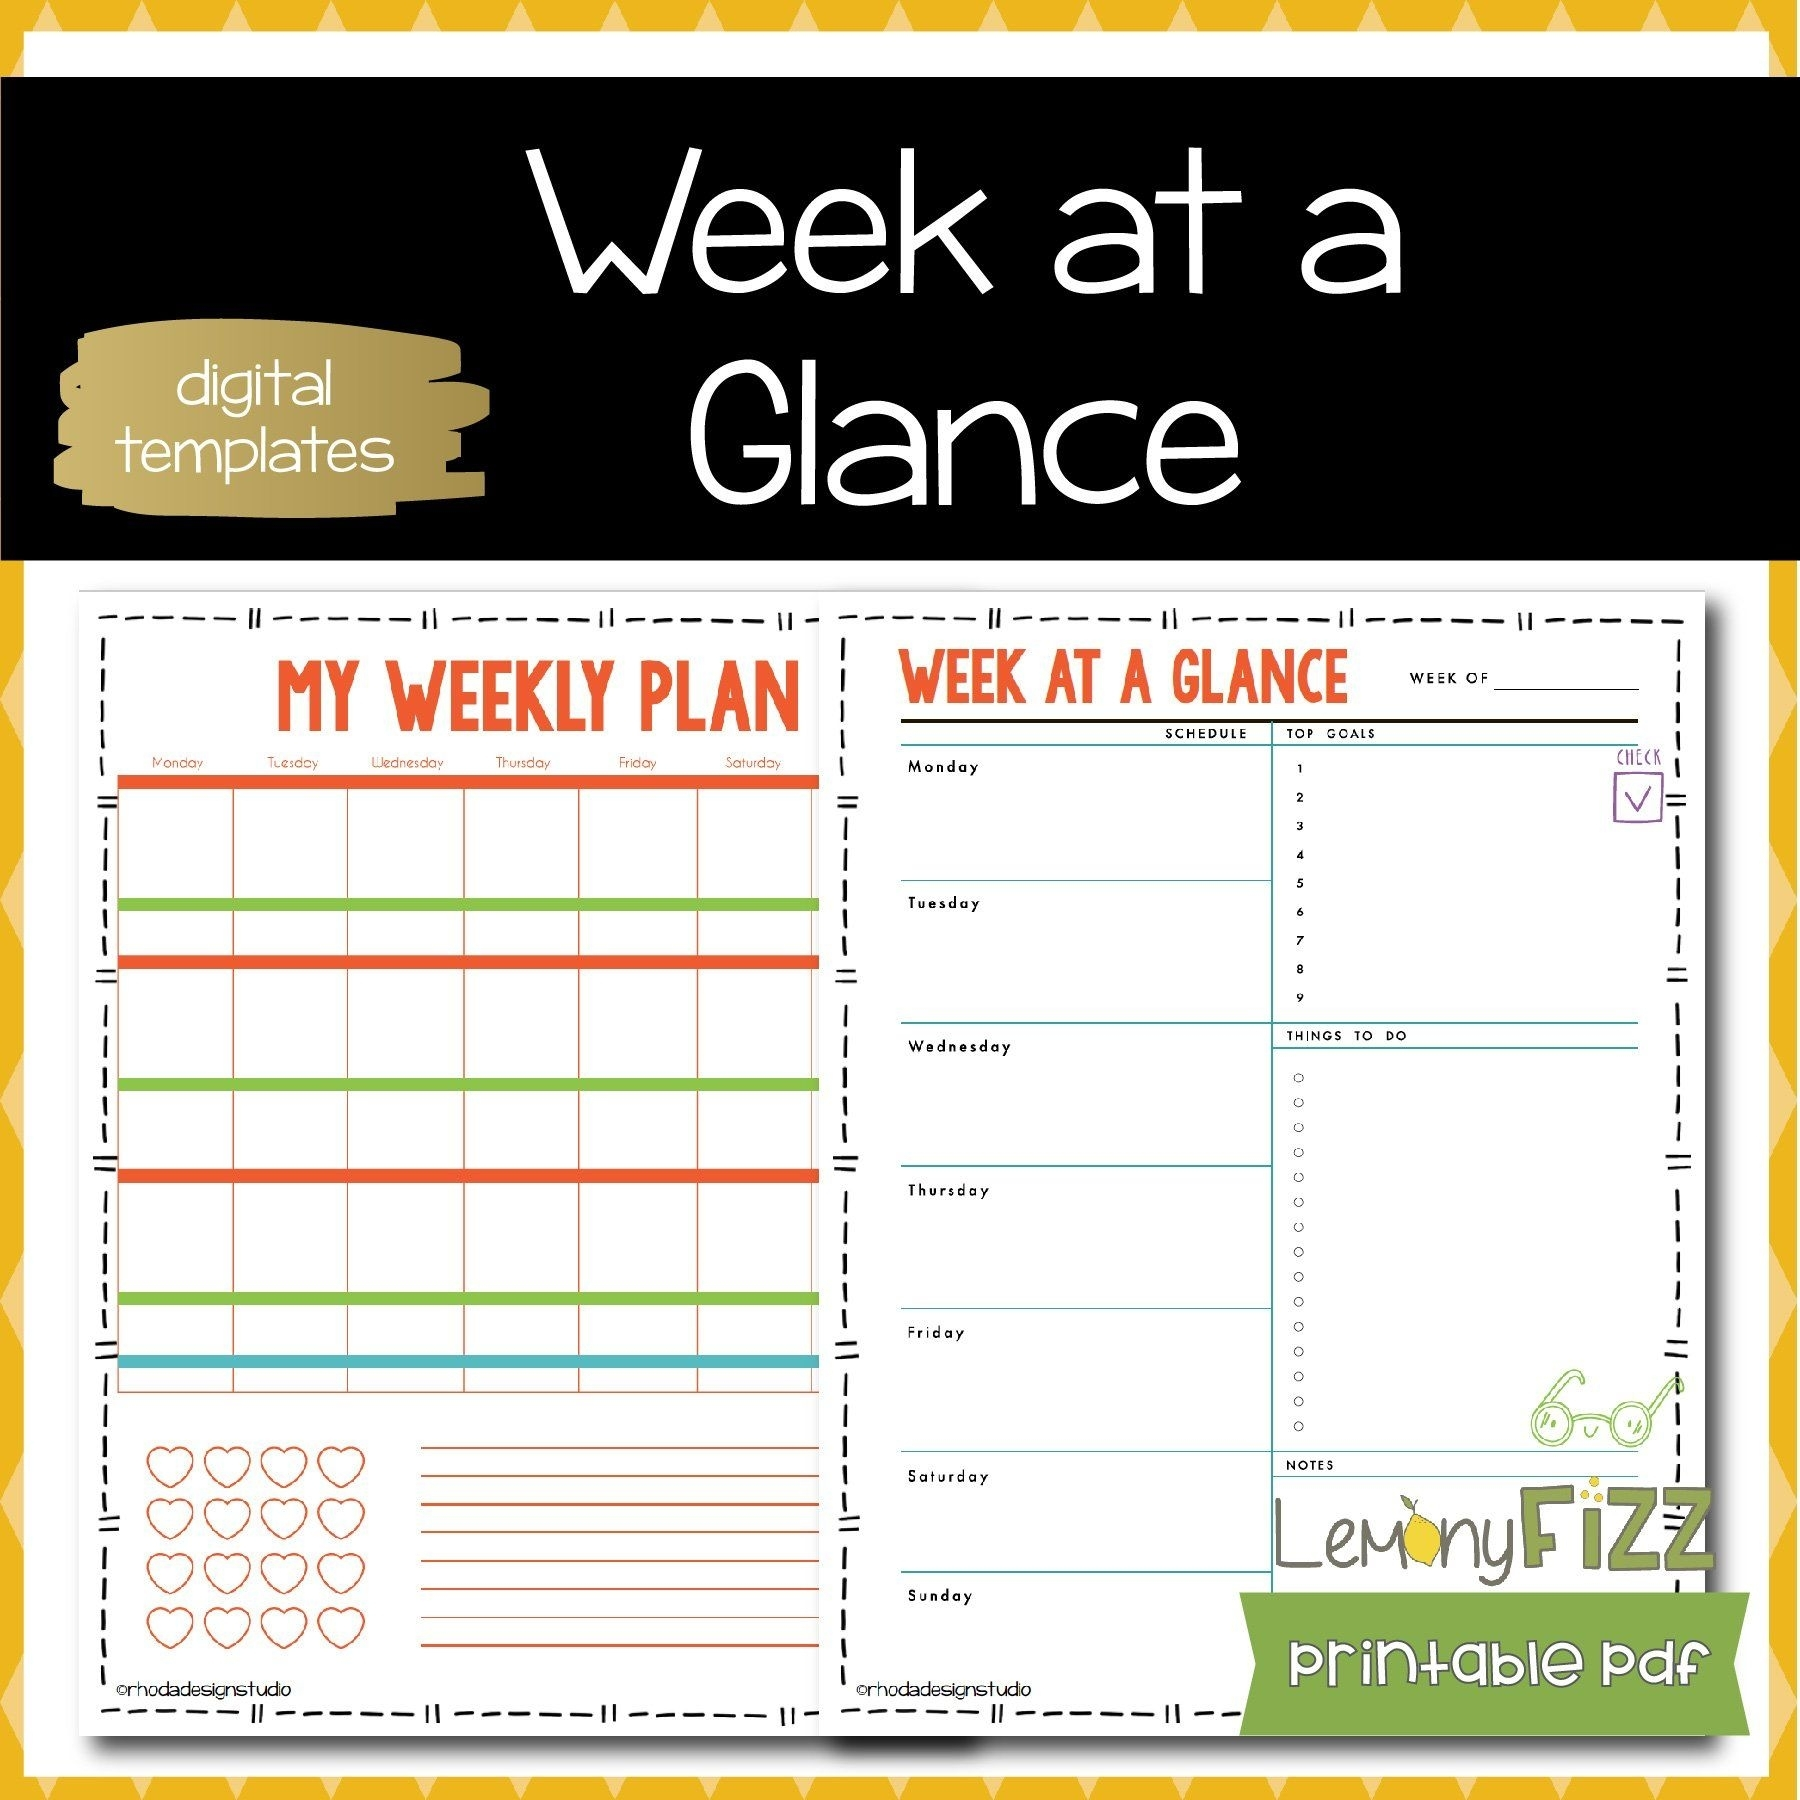 My Weekly Planner Template Schedule Free Templates For Excel | Smorad pertaining to Schedule At A Glance Template